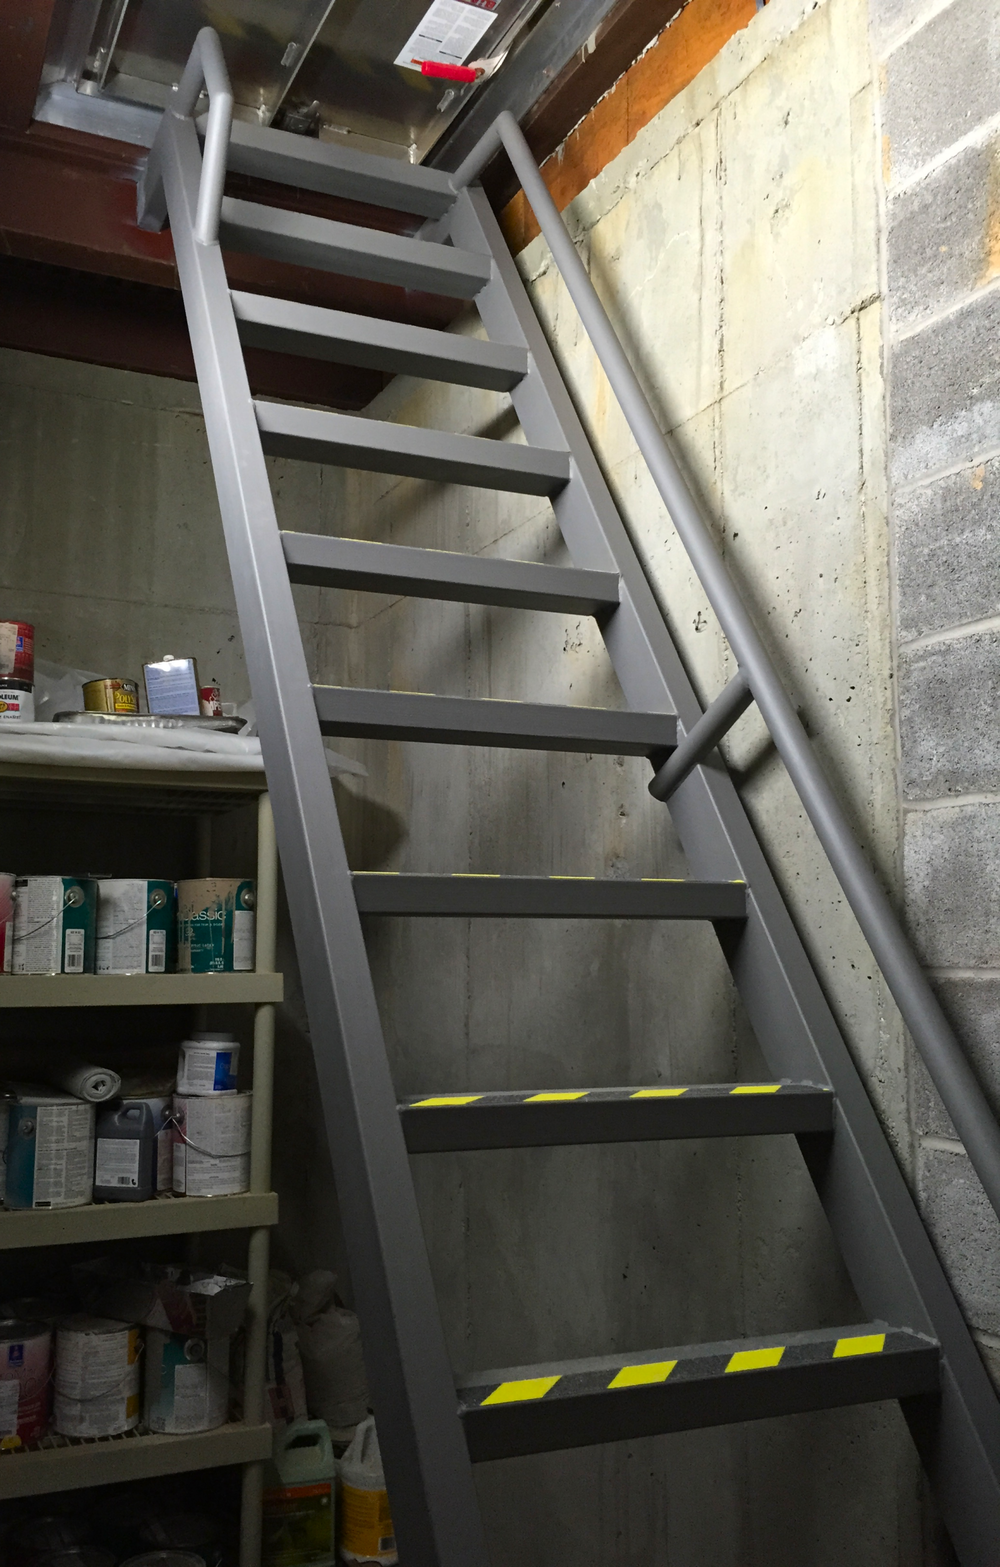 Safe Room Ladder & Railing